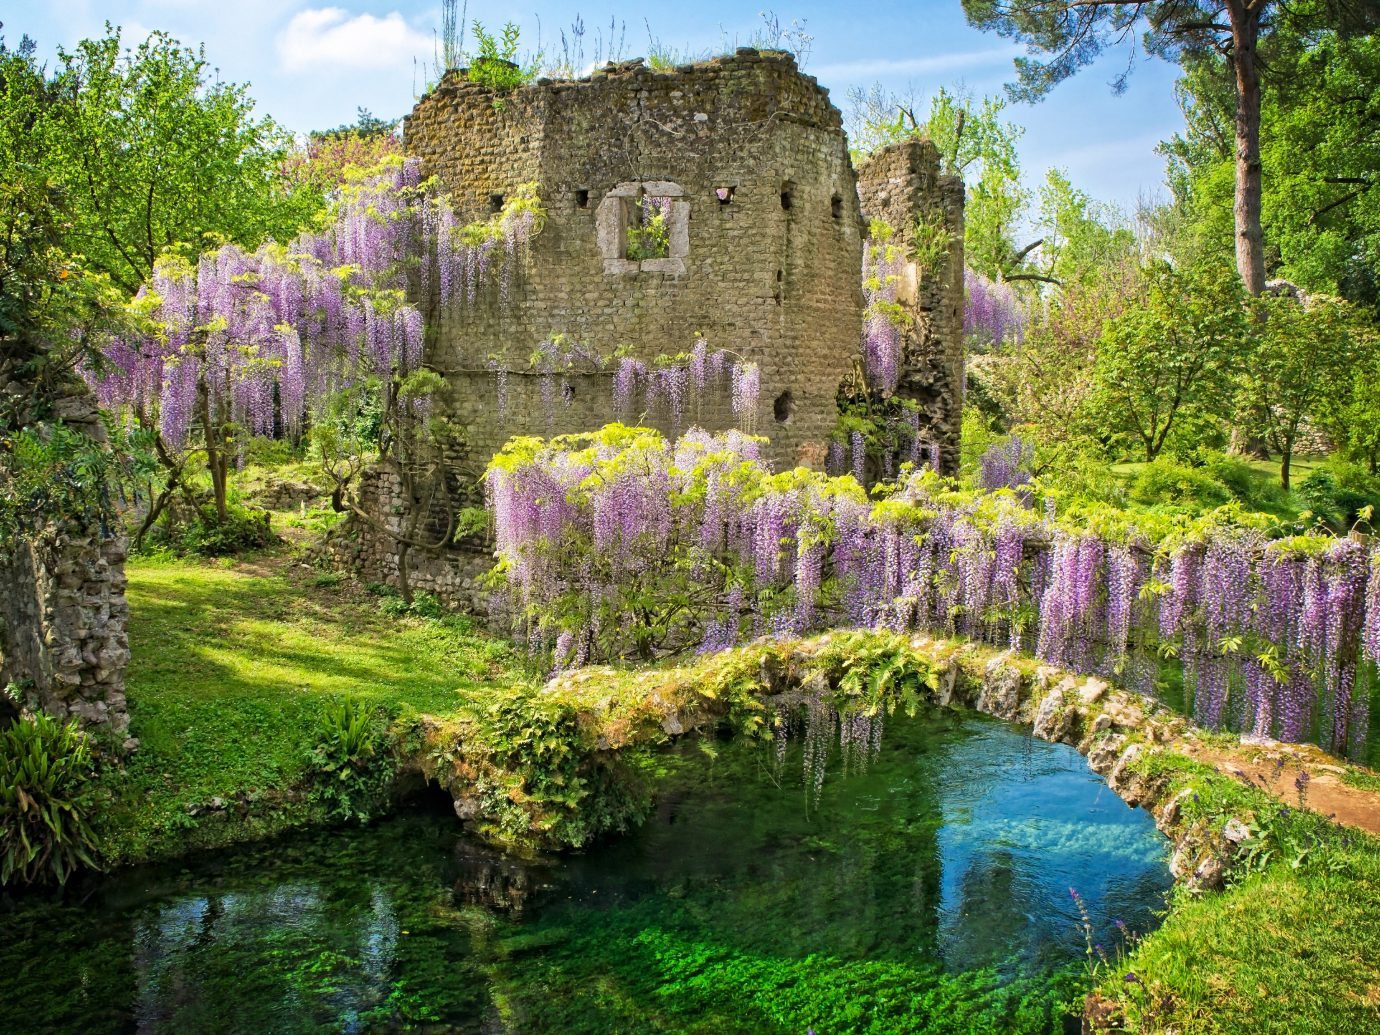 Beautiful view of the Gardens of Ninfa